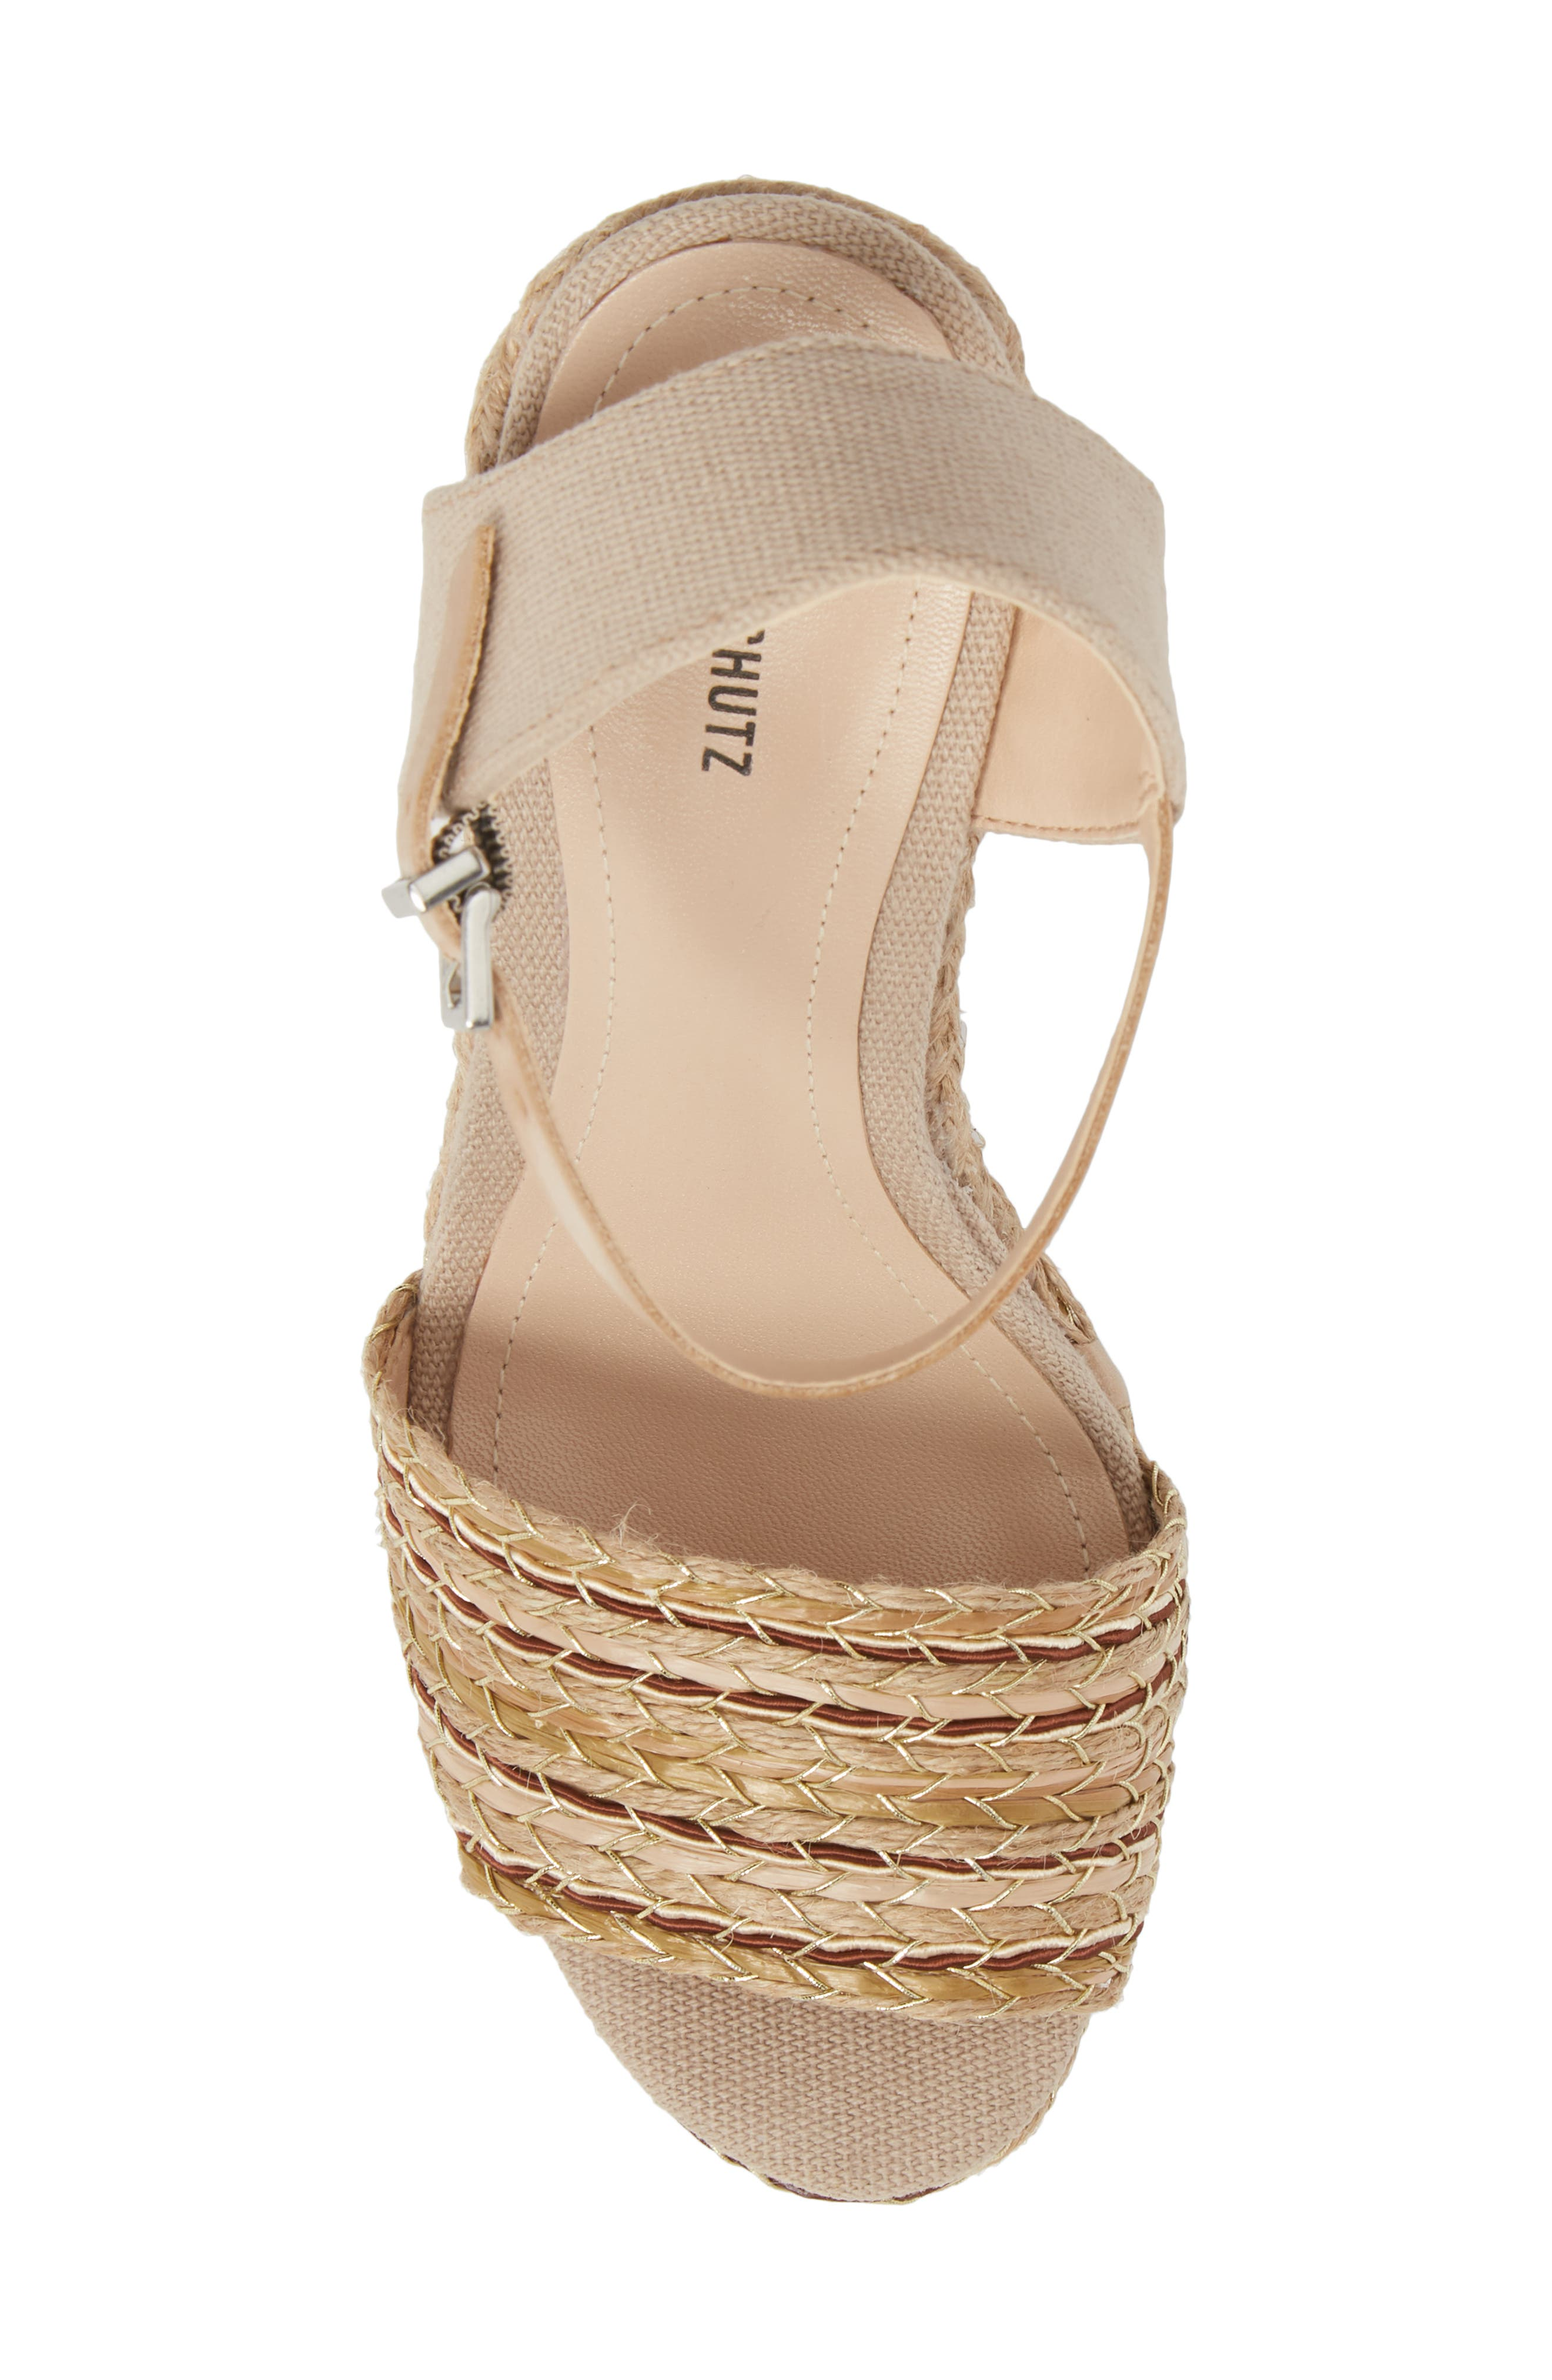 Rilark Platform Wedge Sandal,                             Alternate thumbnail 5, color,                             Coco Fabric